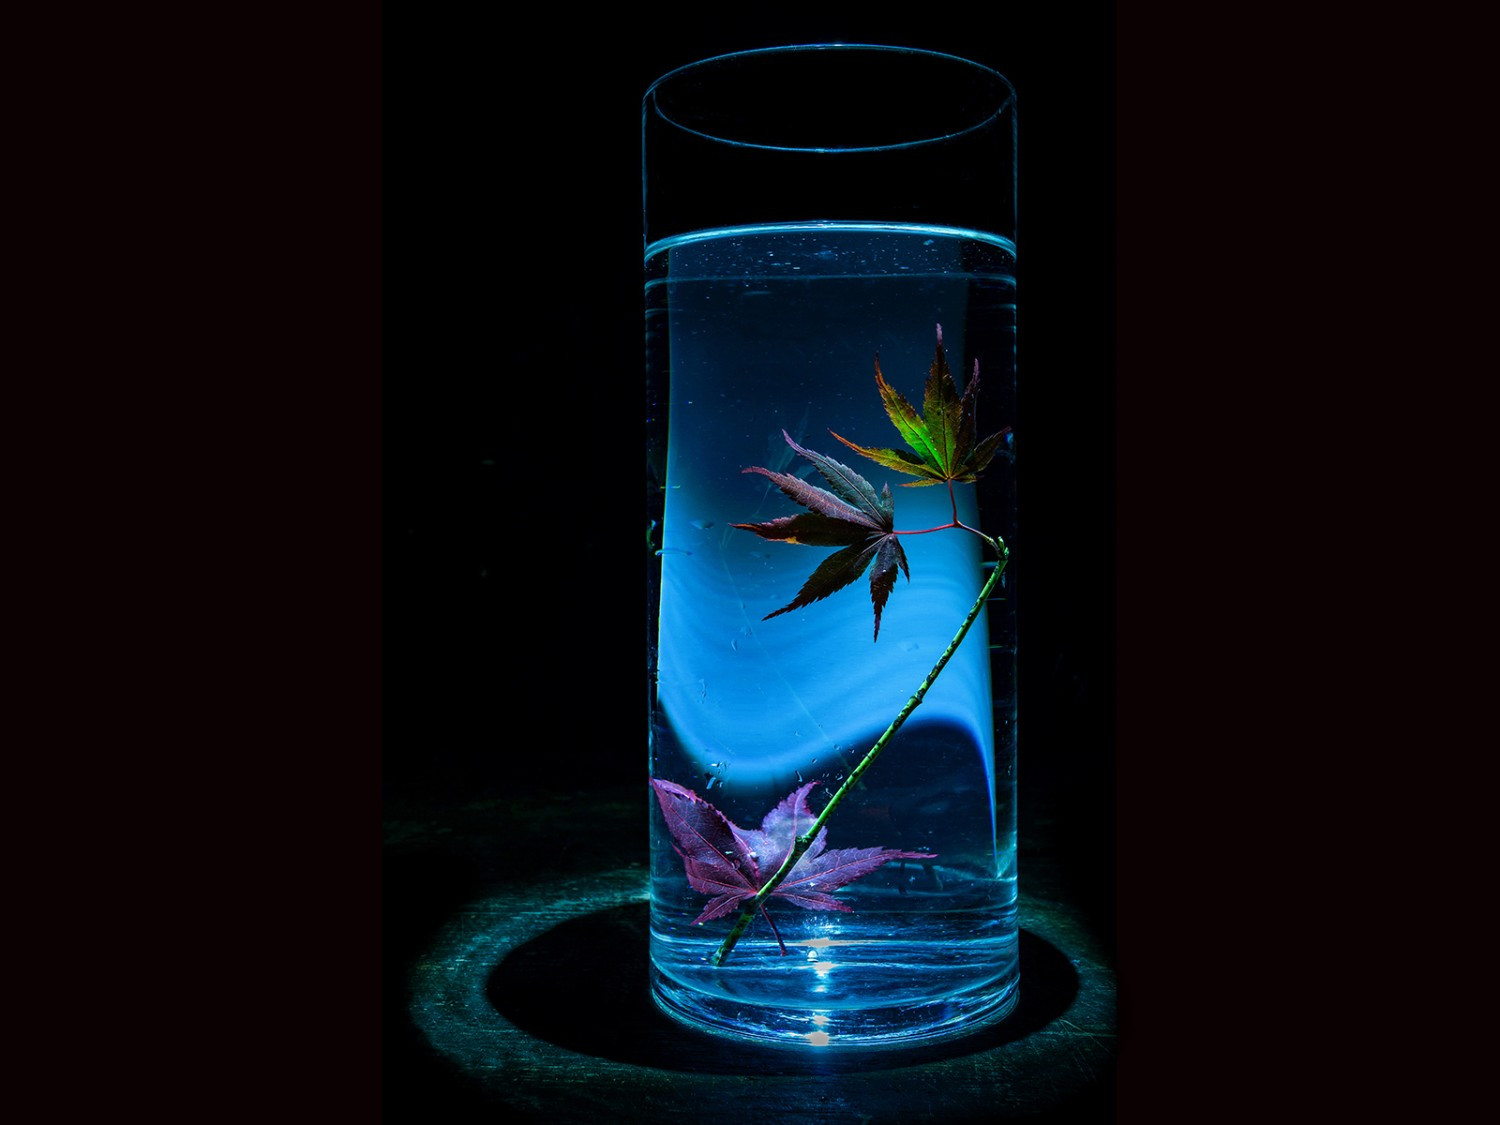 Acer Leaf in a water filled glass vase.